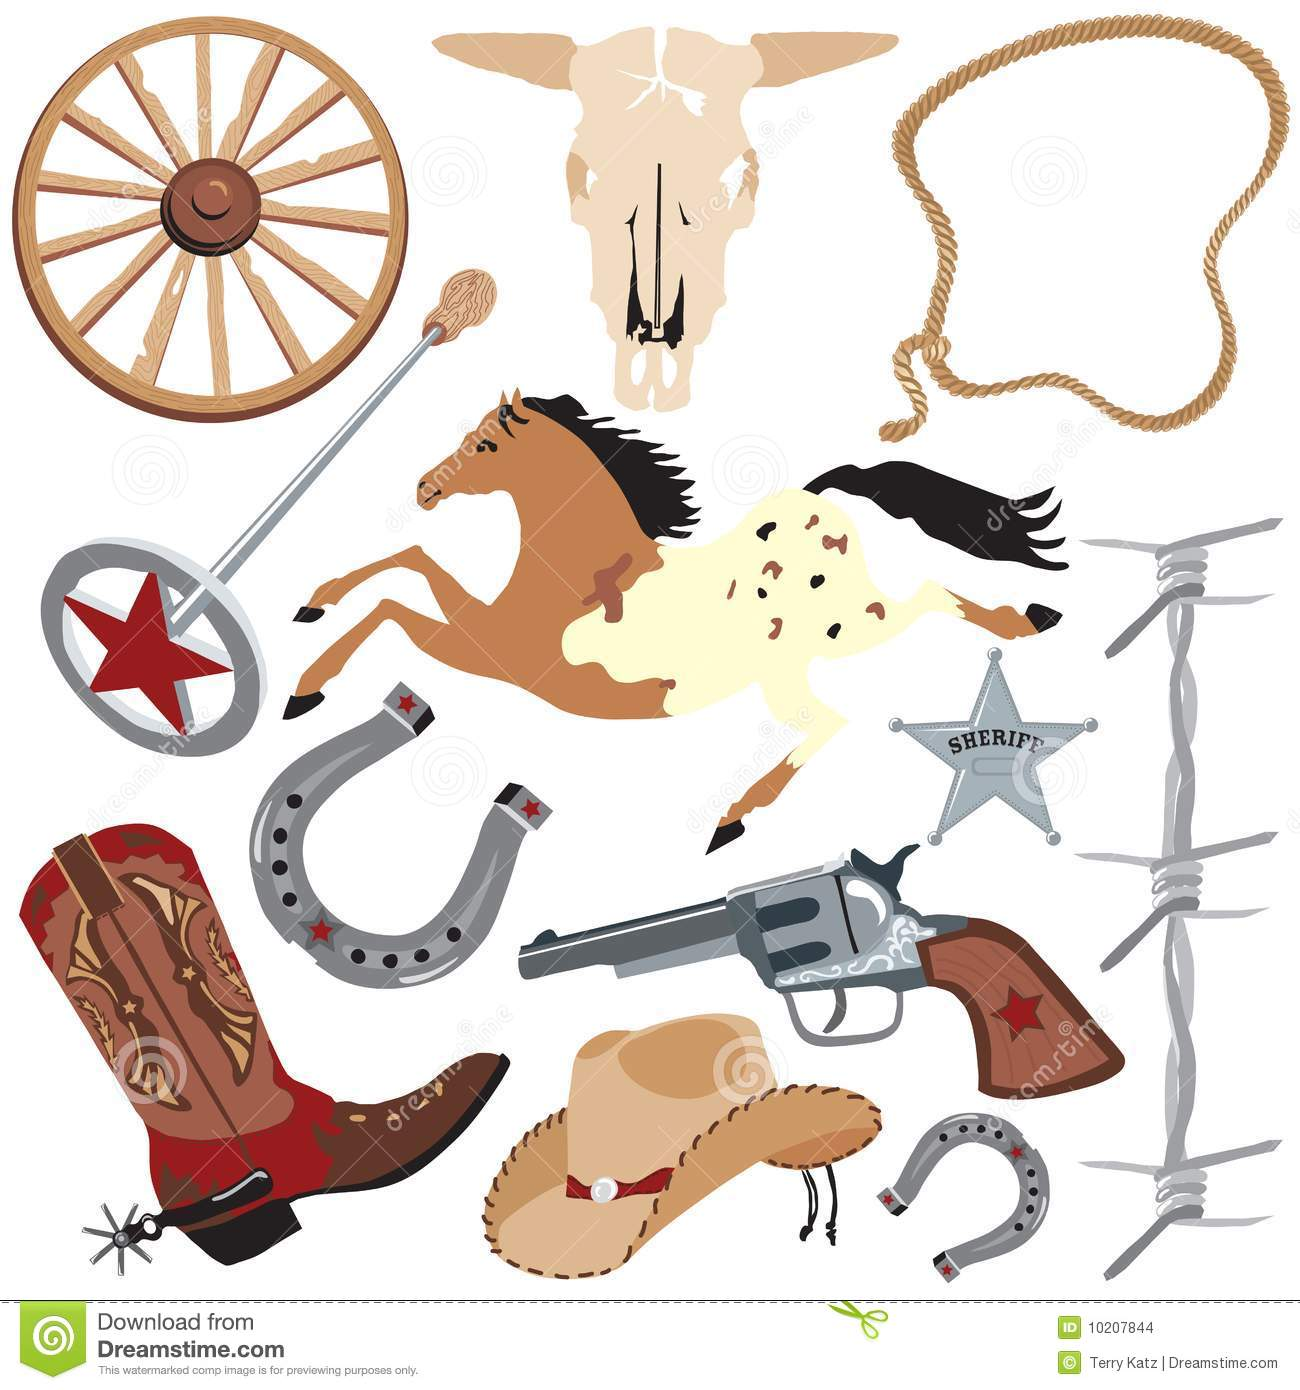 hight resolution of cowboy clip art elements wild west clipart western bbq banner royalty free download